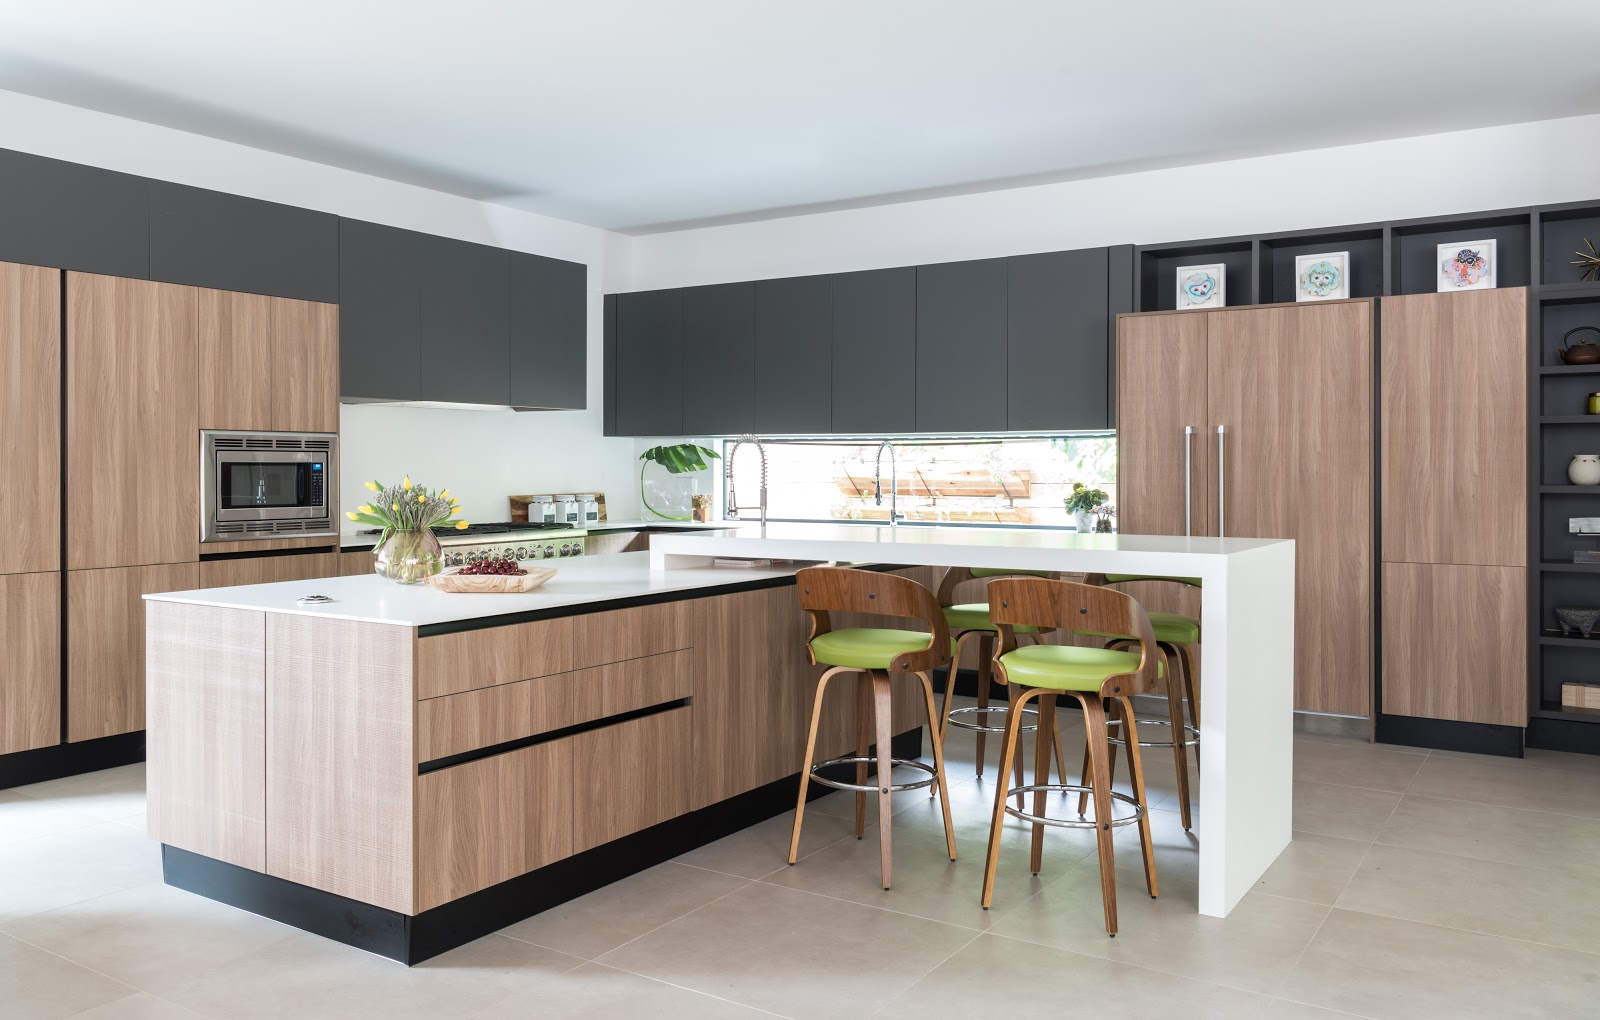 Minimal organic kitchen with green barstools and wood paneling - Dbh-biz.info Interior Design